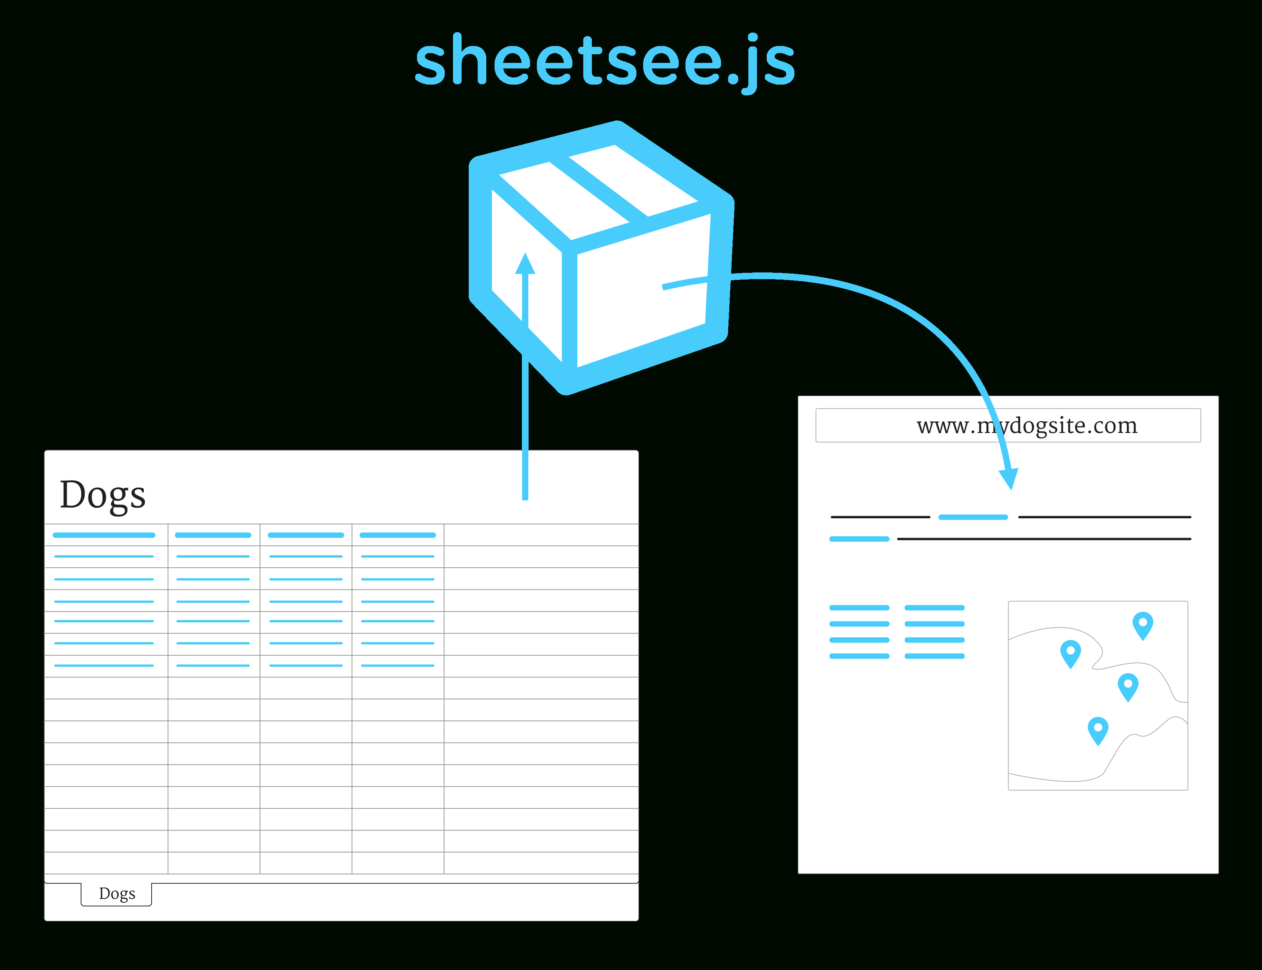 Spreadsheet Js Within Sheetsee.js